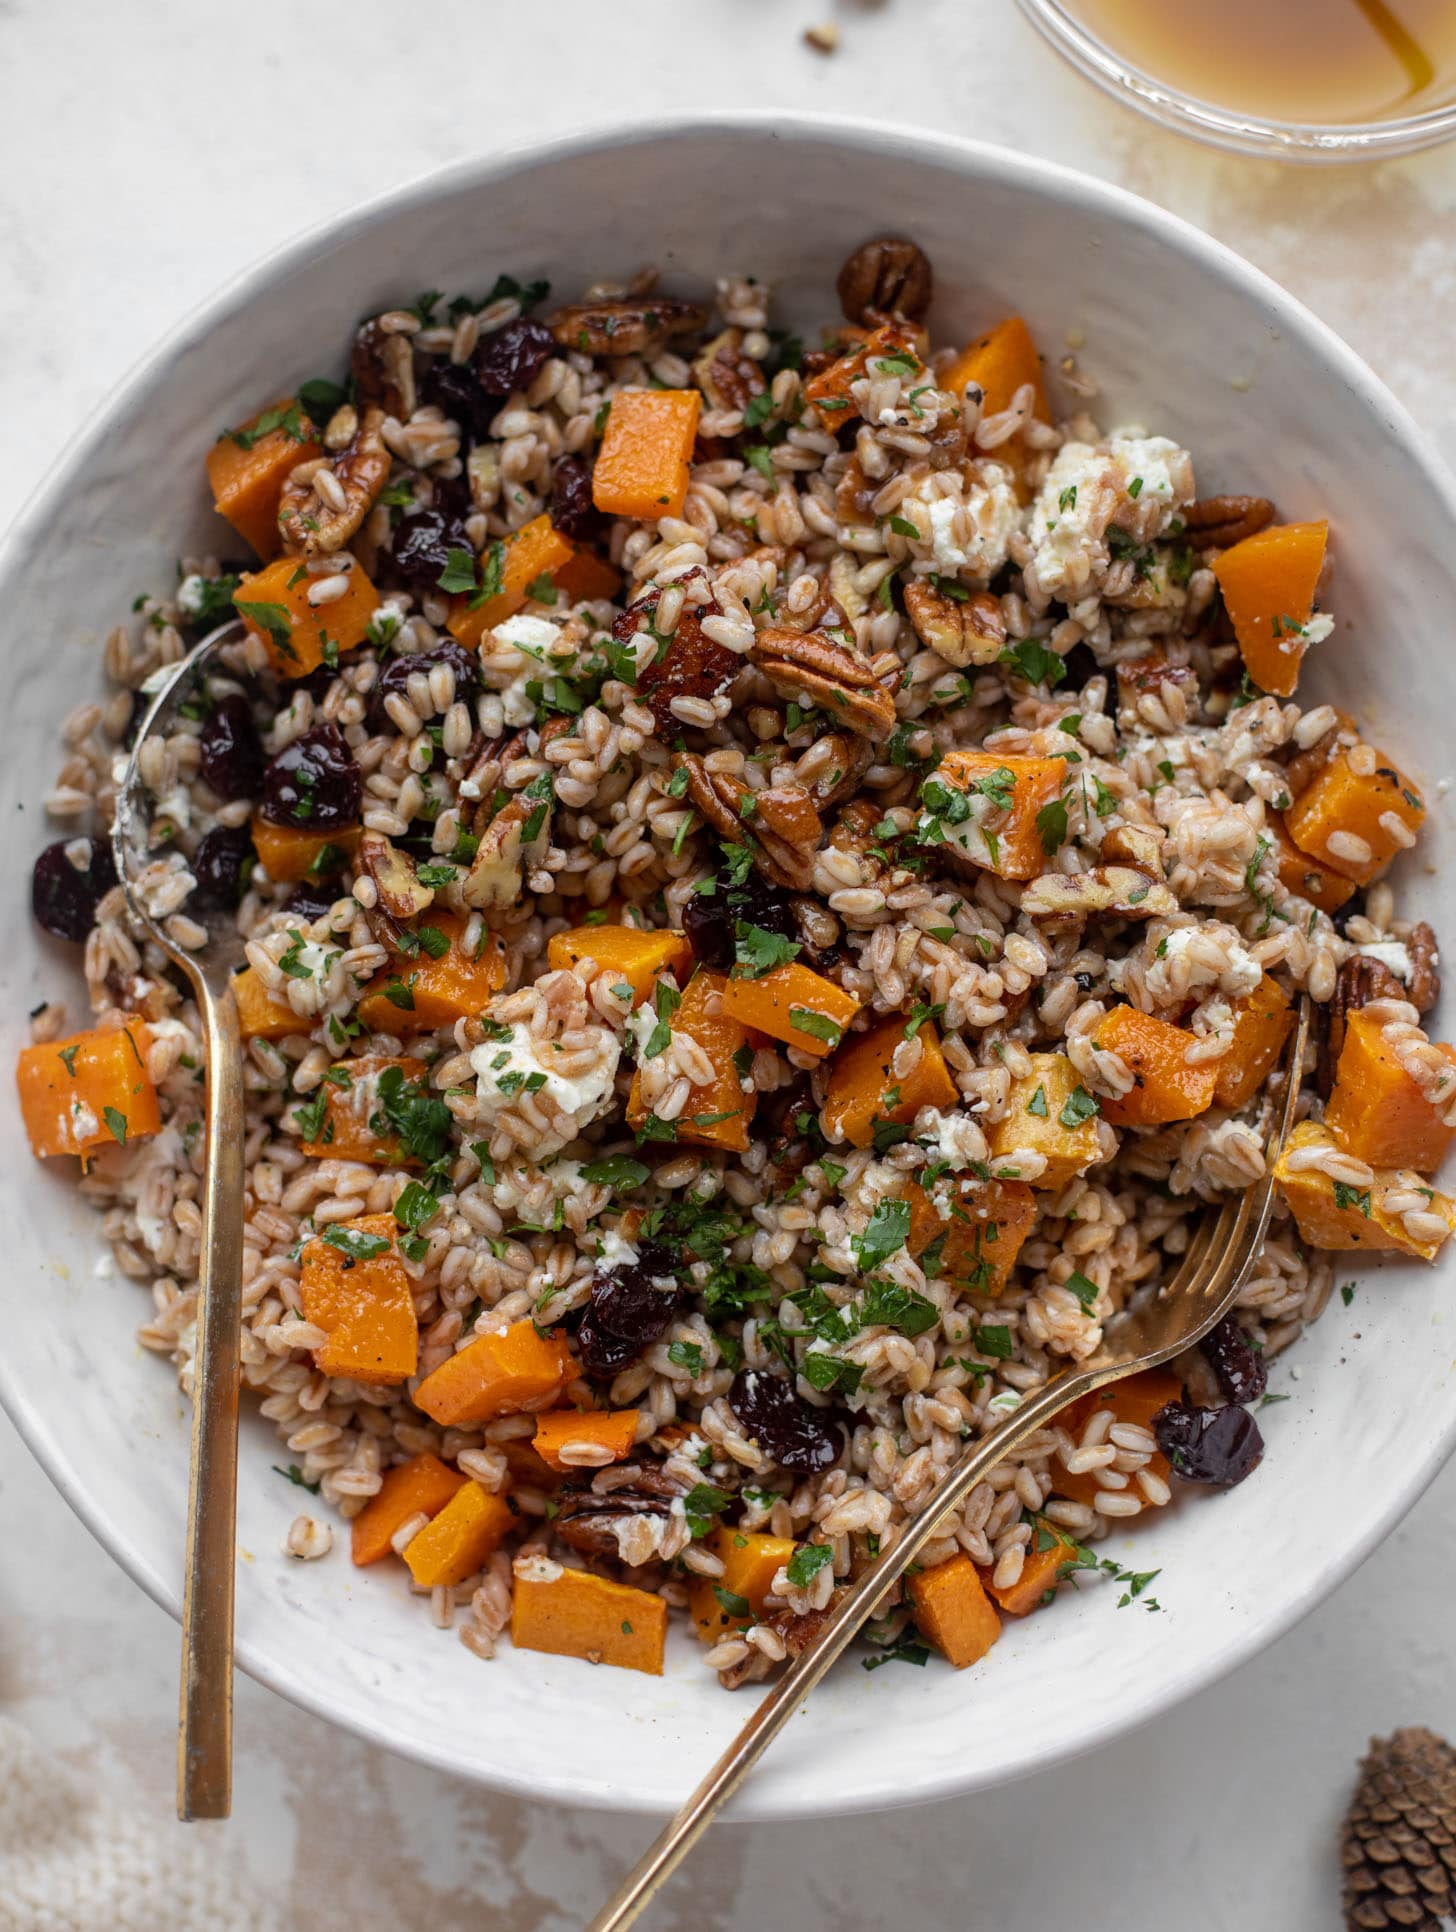 warm winter farro with butternut squash, goat cheese, cranberries and pecans